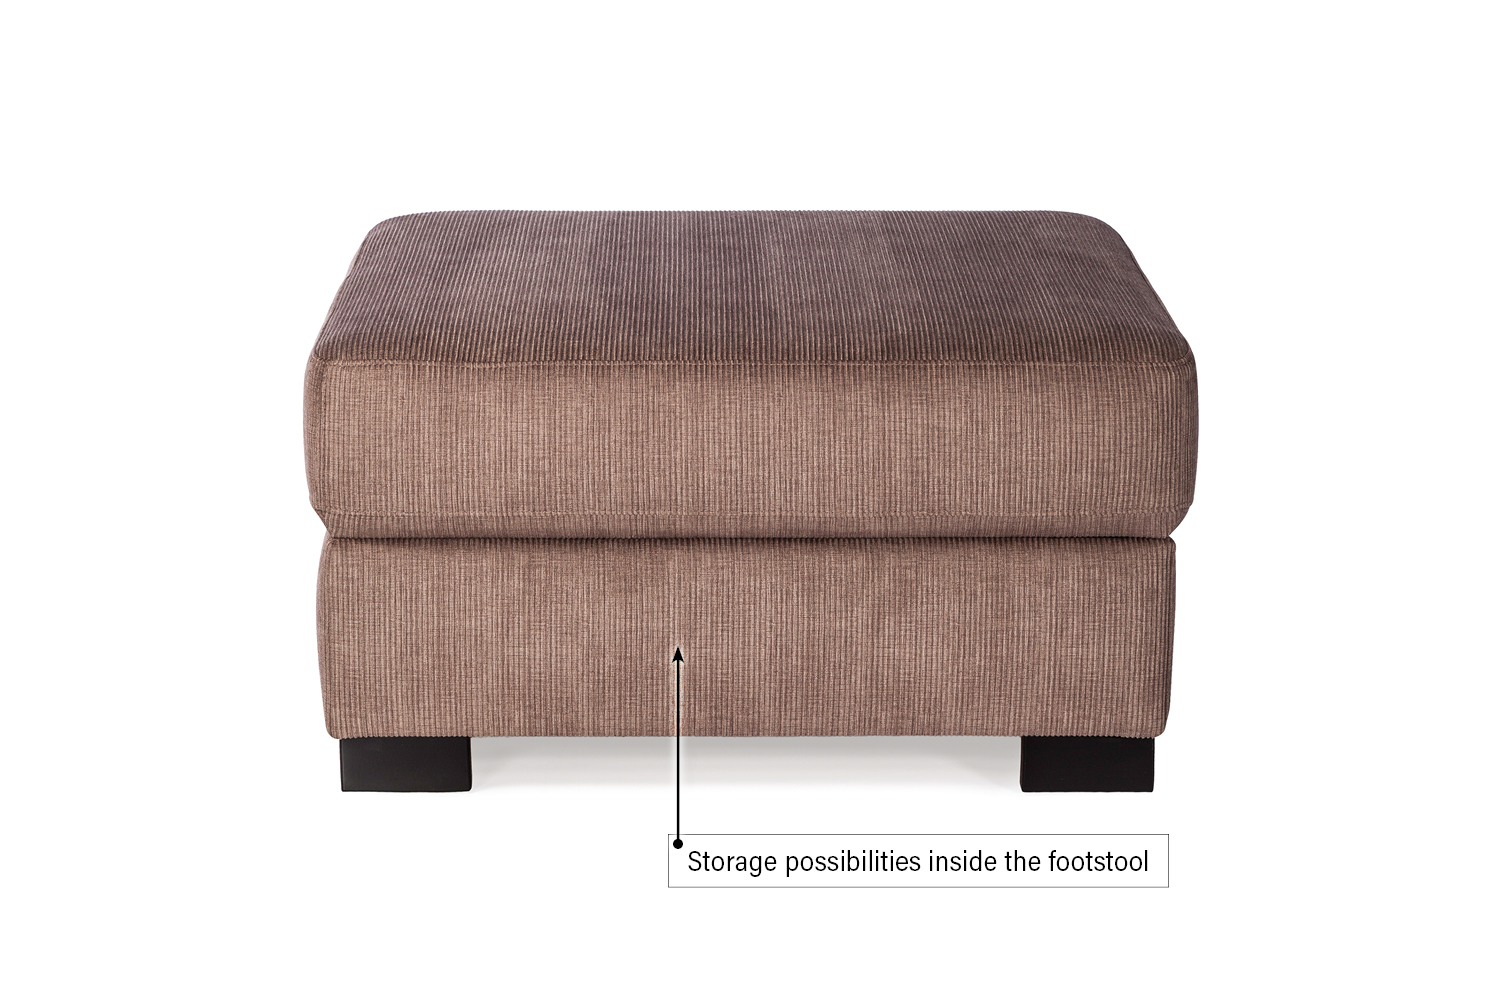 In picture: Footstool Magnum. Fabric: Hombre 5310.